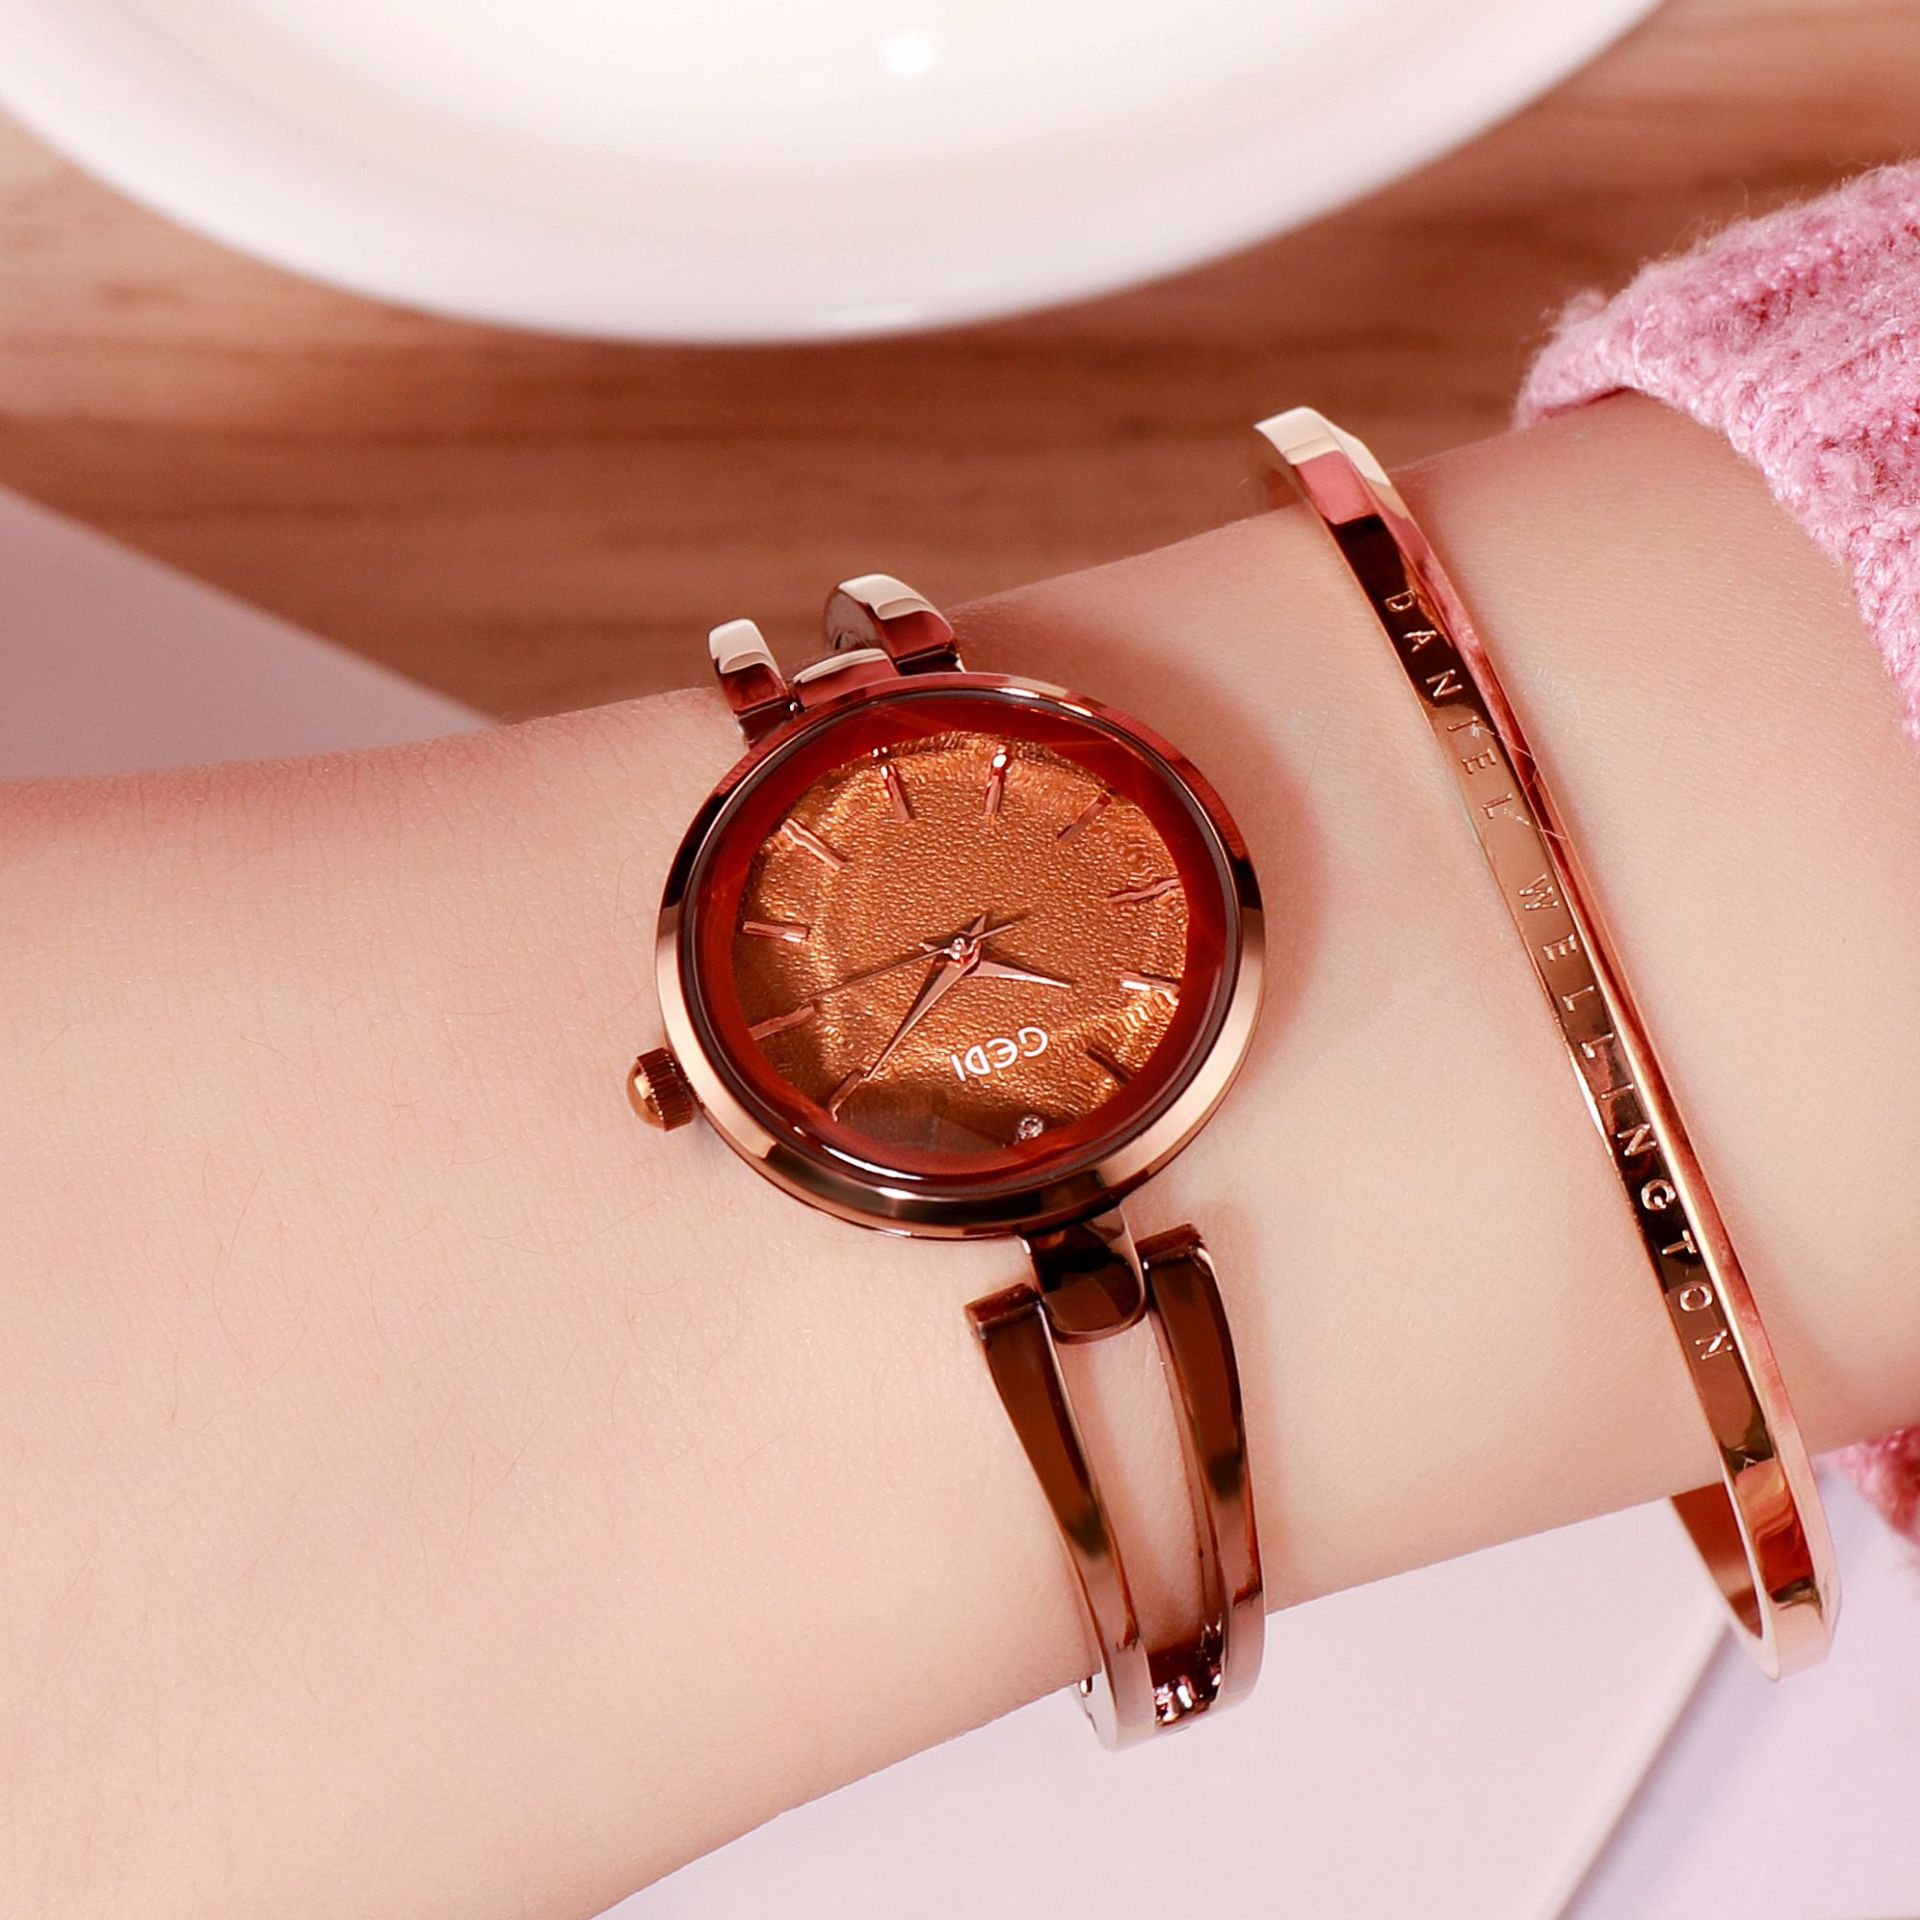 Women Stainless Steel Waterproof Bracelet Watch with Spiral Case for Casual Office  Coffee color shell coffee dial